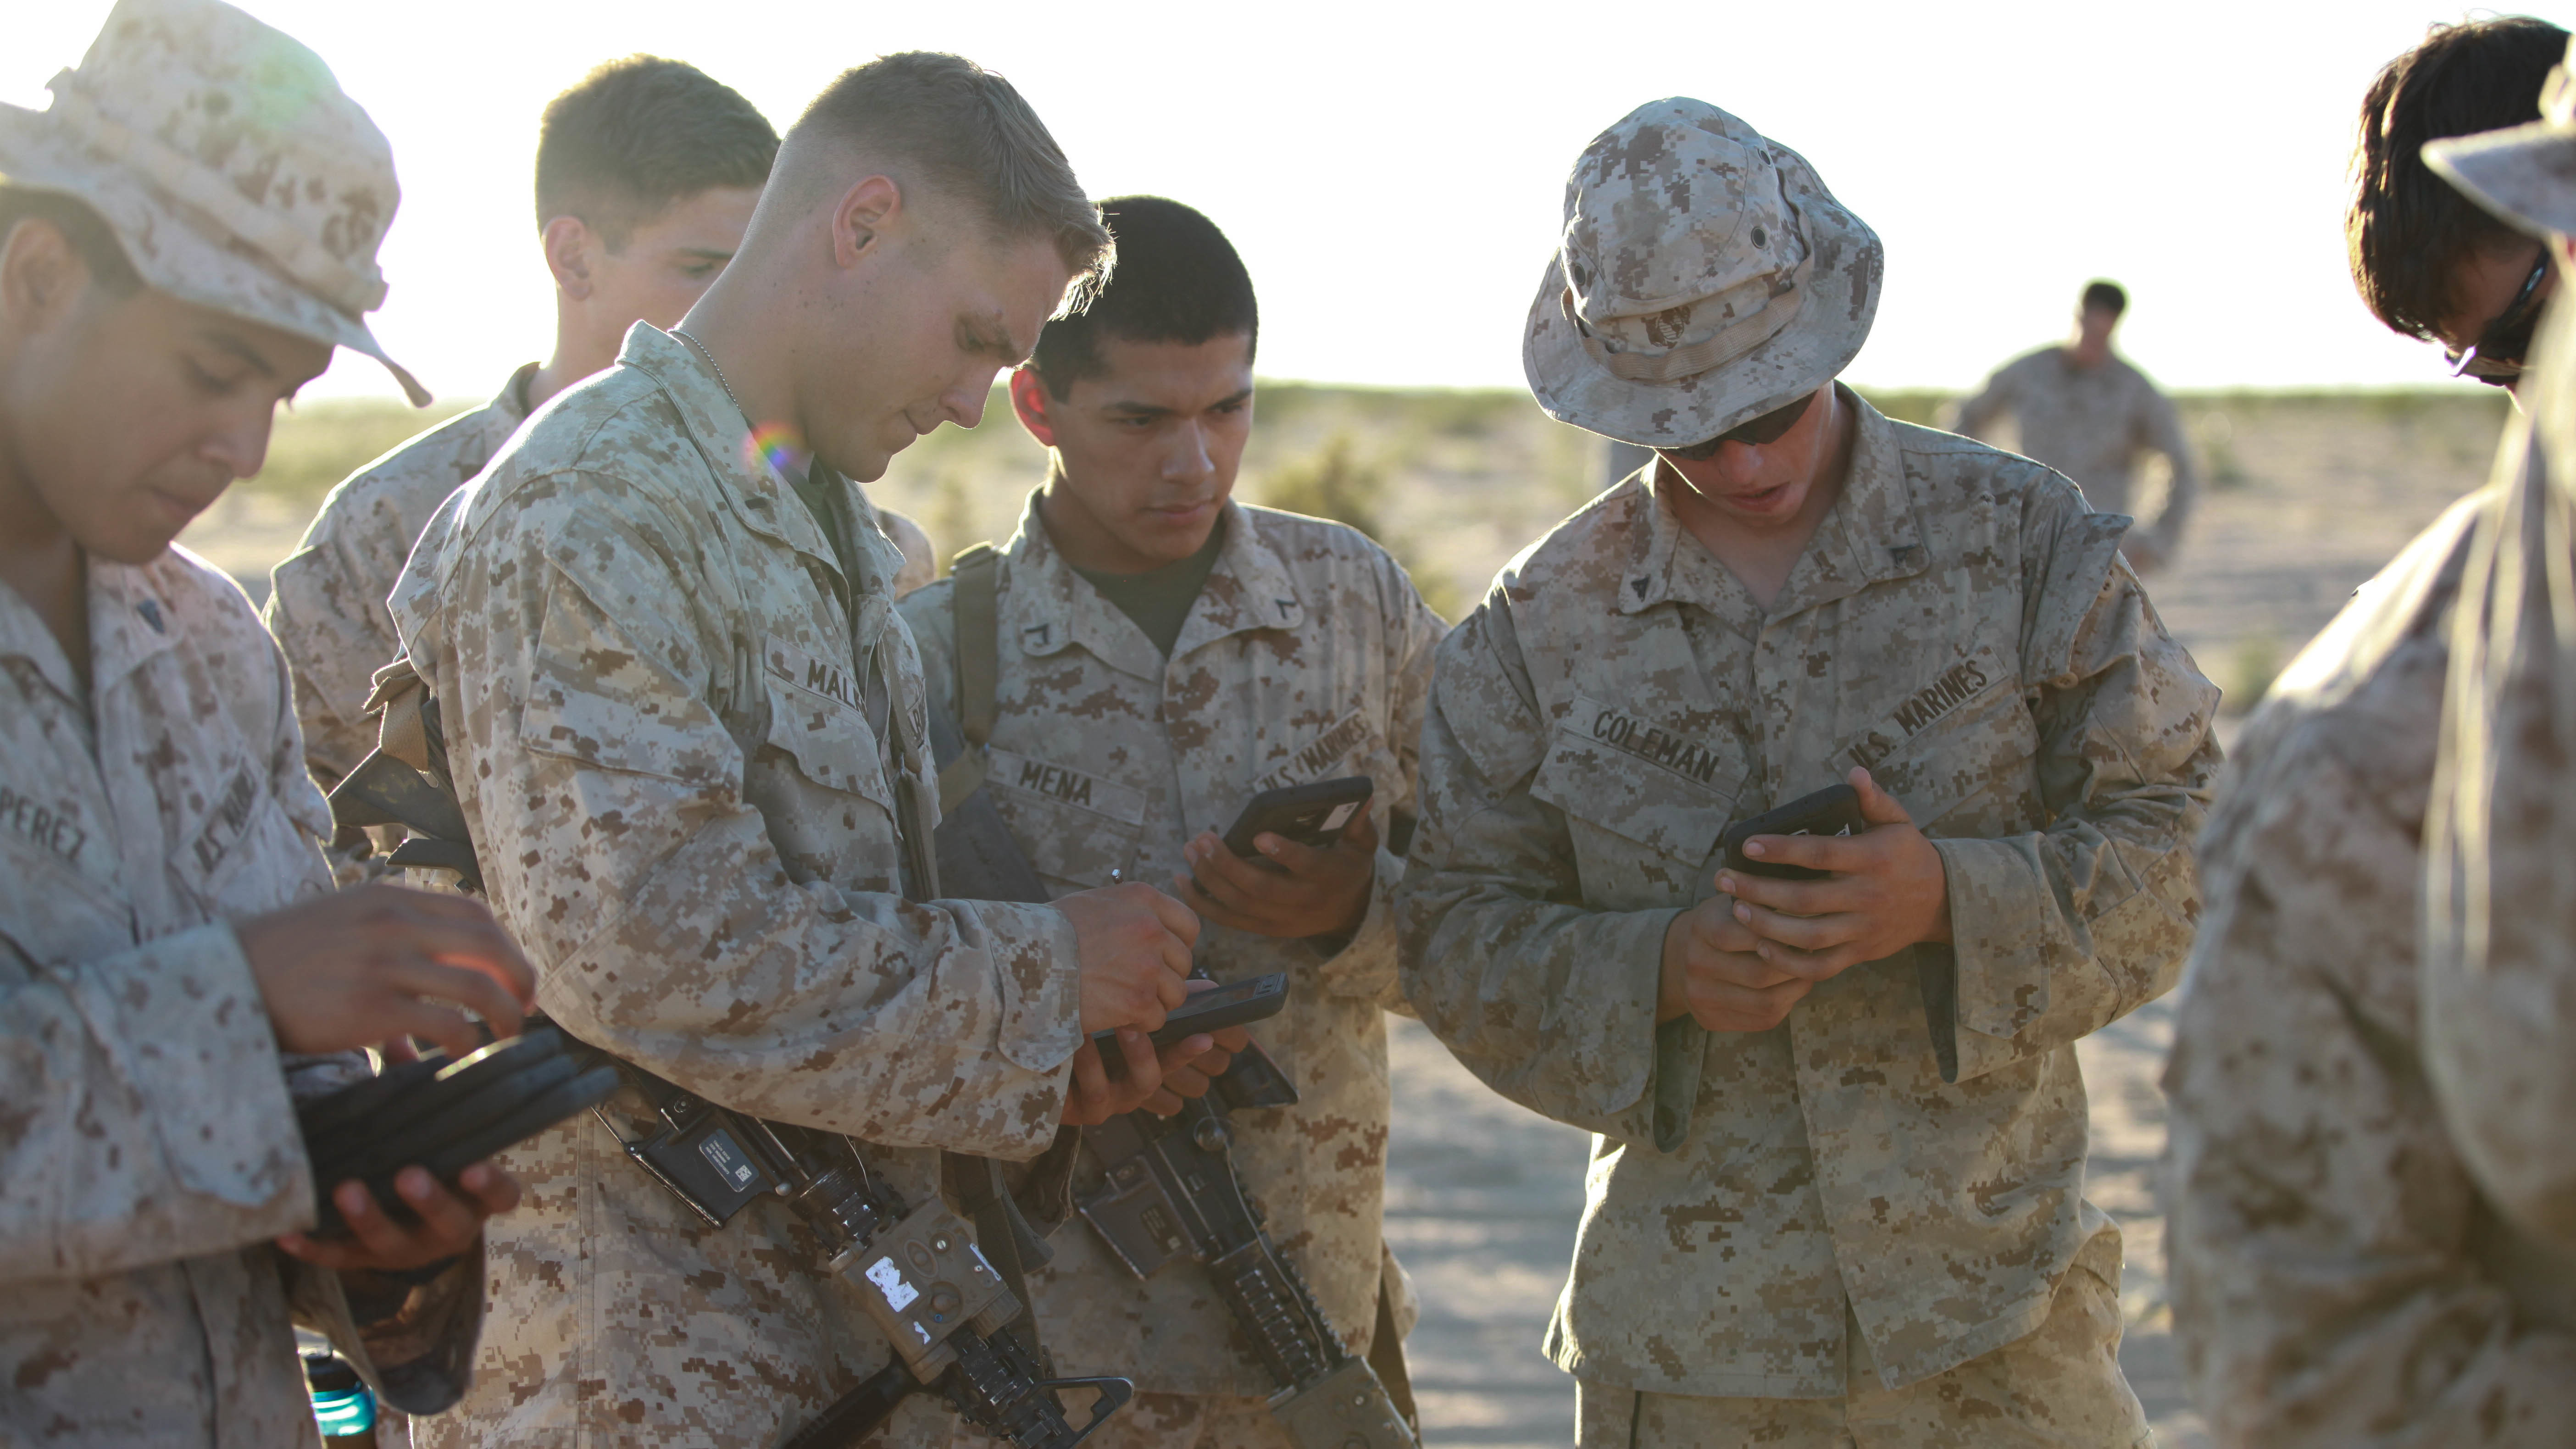 Marines with Fox Company, 2nd Battalion, 7th Marine Regiment use tablets to help them in a training exercise at Marine Corps Air Station Yuma, Ariz., Oct. 14, 2015. The tablets are wirelessly connected through an encrypted internal Wi-Fi network allowing Marines to coordinate and maneuver more efficiently in a tactical environment while securely using various applications on the devices. US Marine Corps photo.